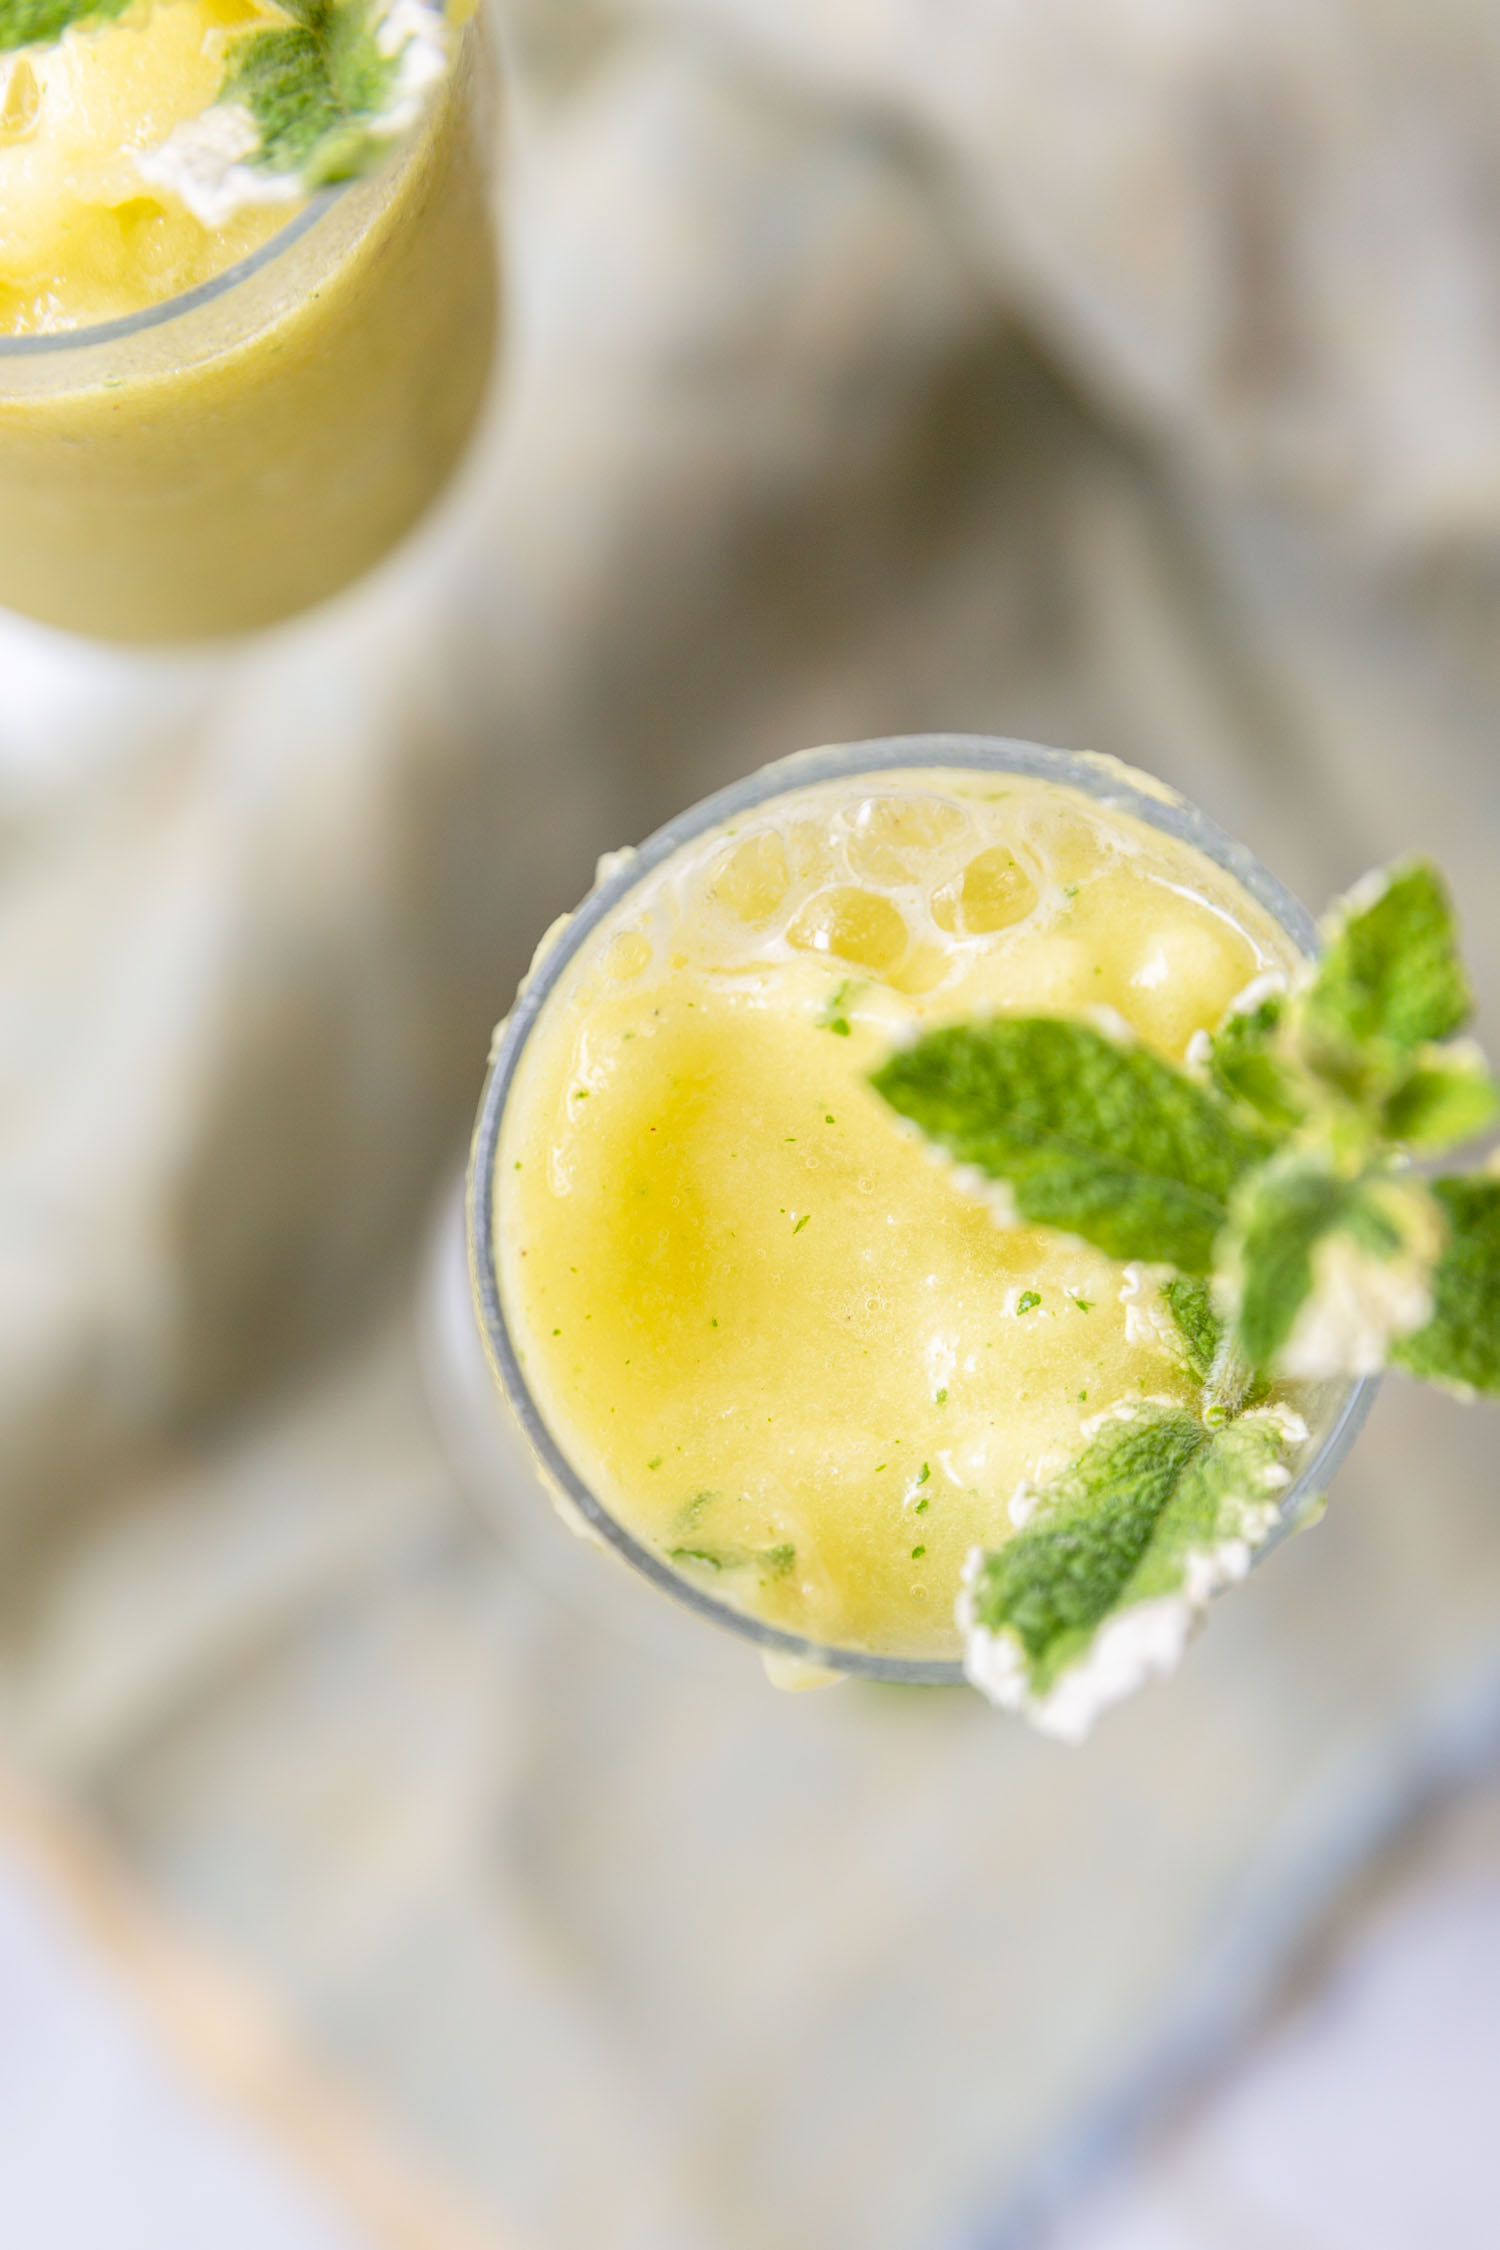 Pineapple Mint Frozen Drinks require just two ingredients (+ water) for a delicious and refreshing mocktail - add your favorite spirits for the ideal summery cocktail. #summerdrink #summercocktail #cocktail #pineapple #pineapplemintrecipe #drinkrecipe #frozendrink #blended #mocktail #fruitydrink #tropicaldrink #mojito